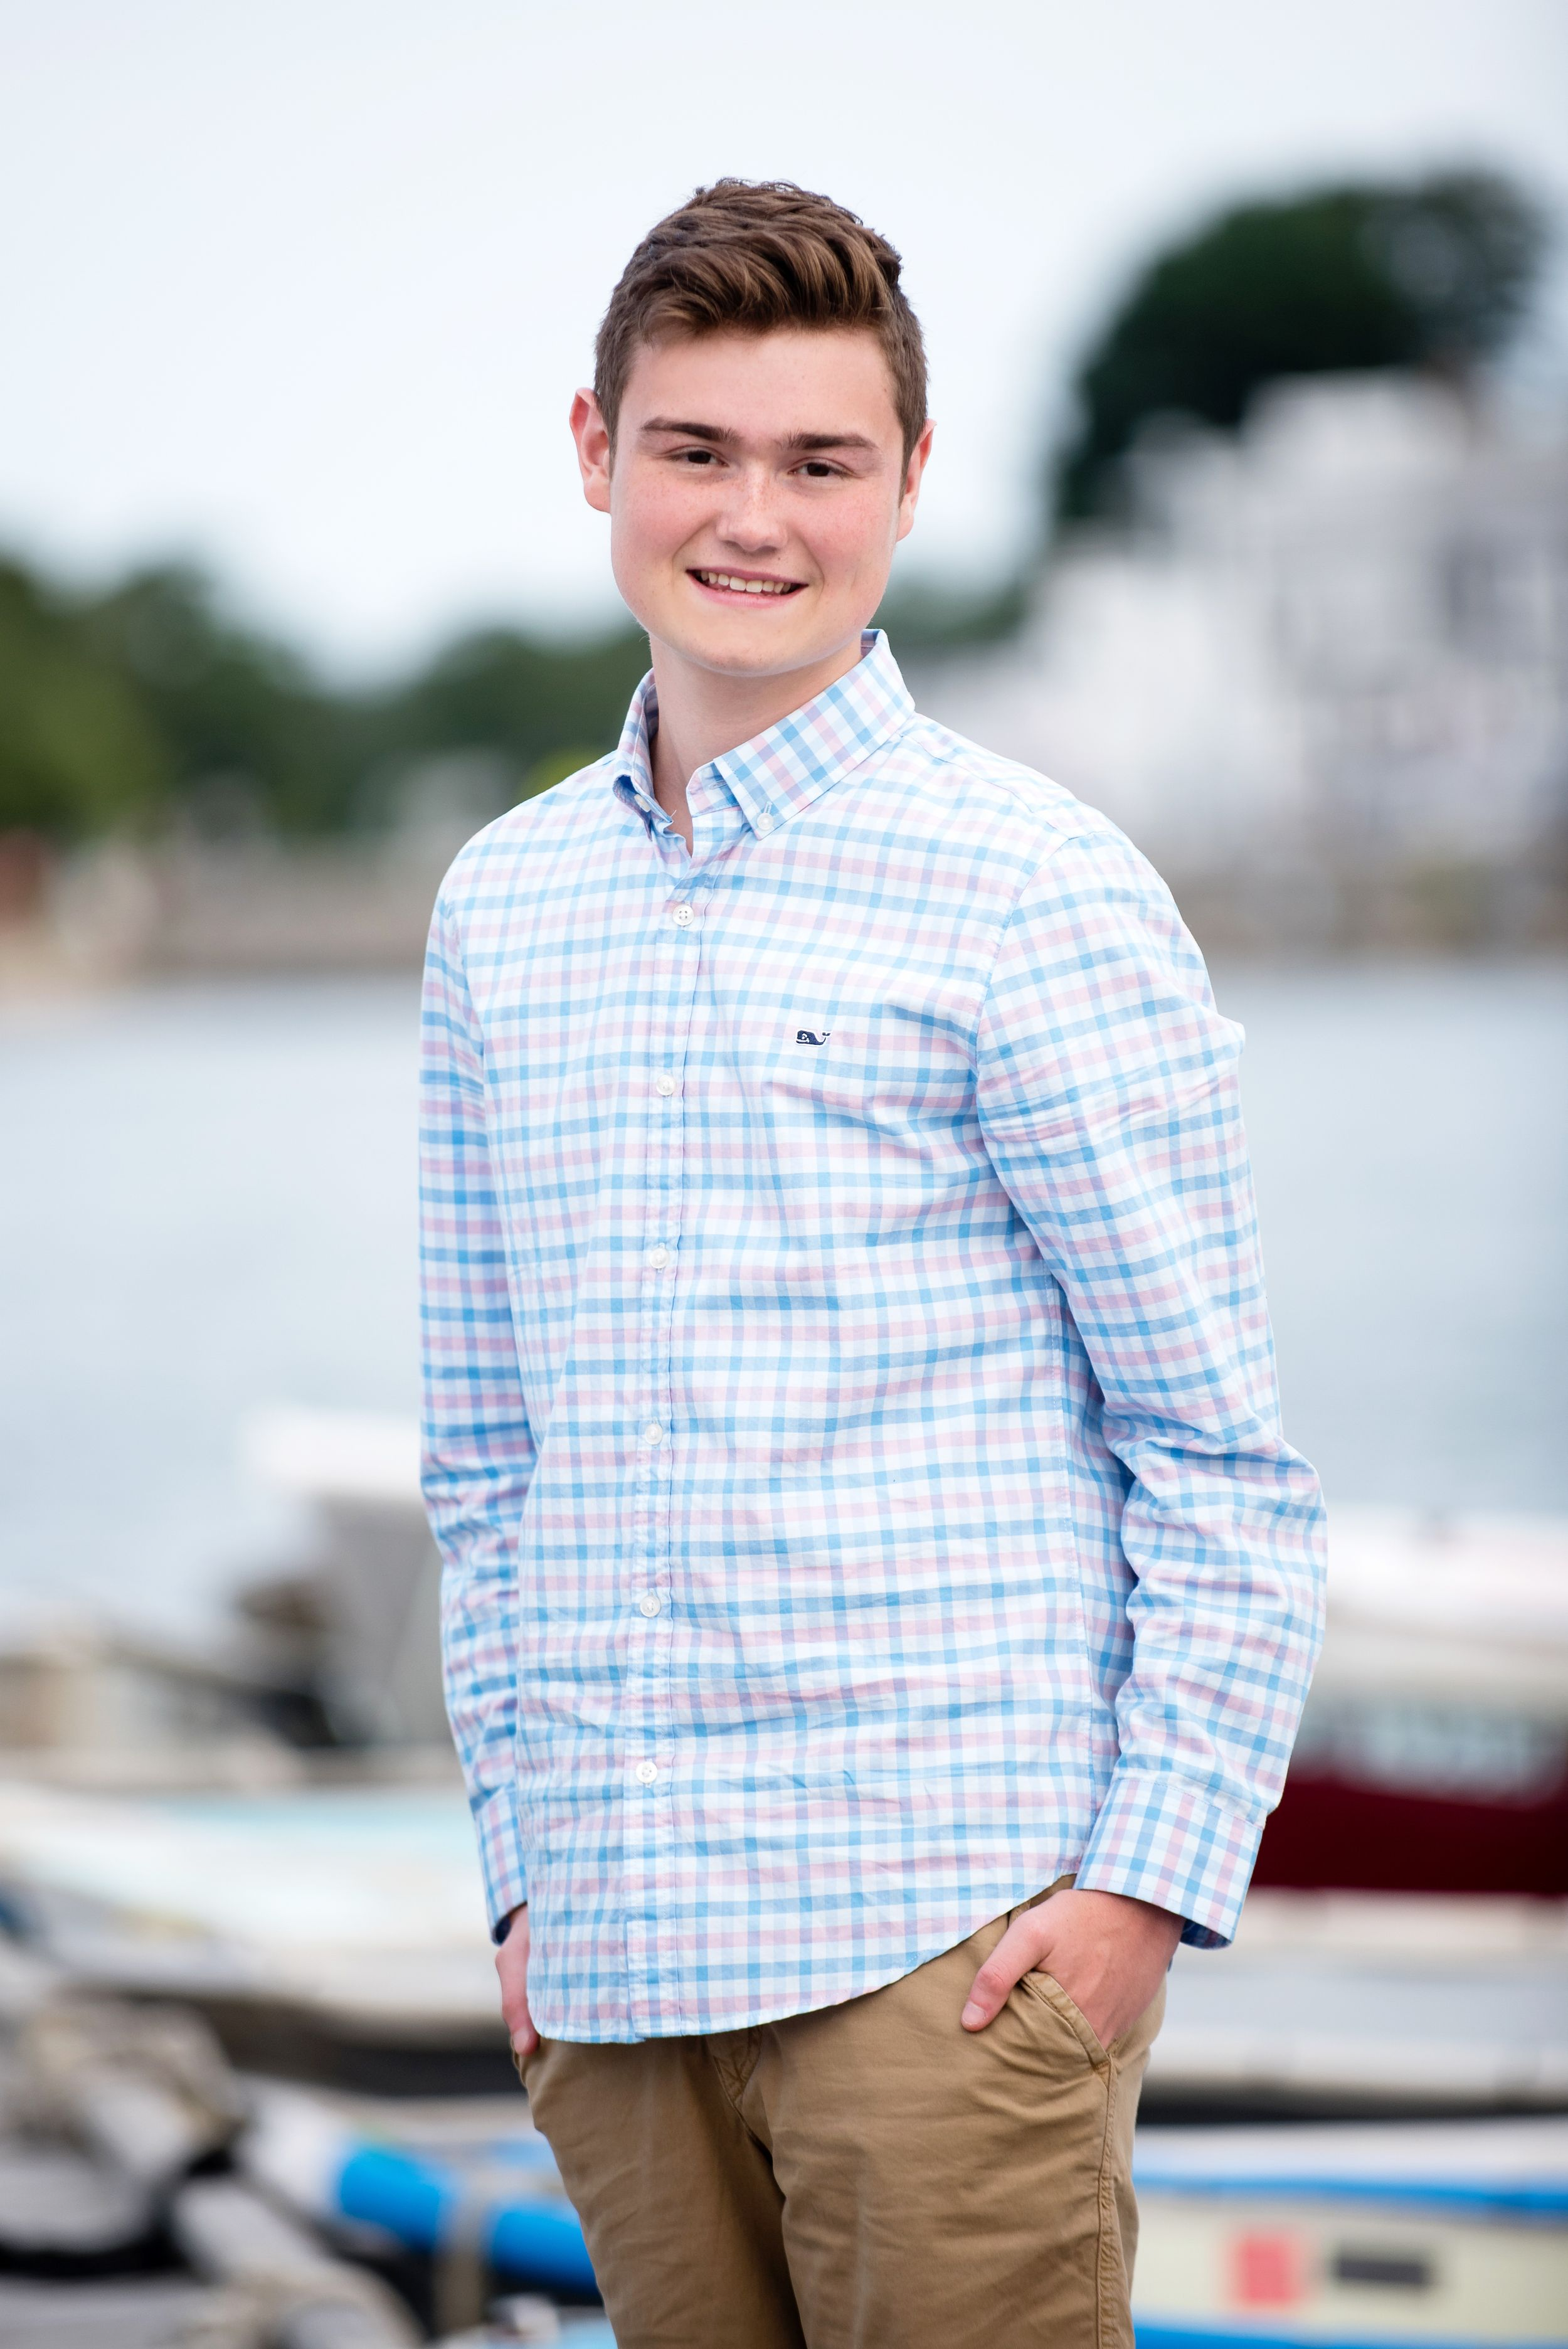 plymouth north high school senior portrait at plymouth town wharf by heidi harting photography